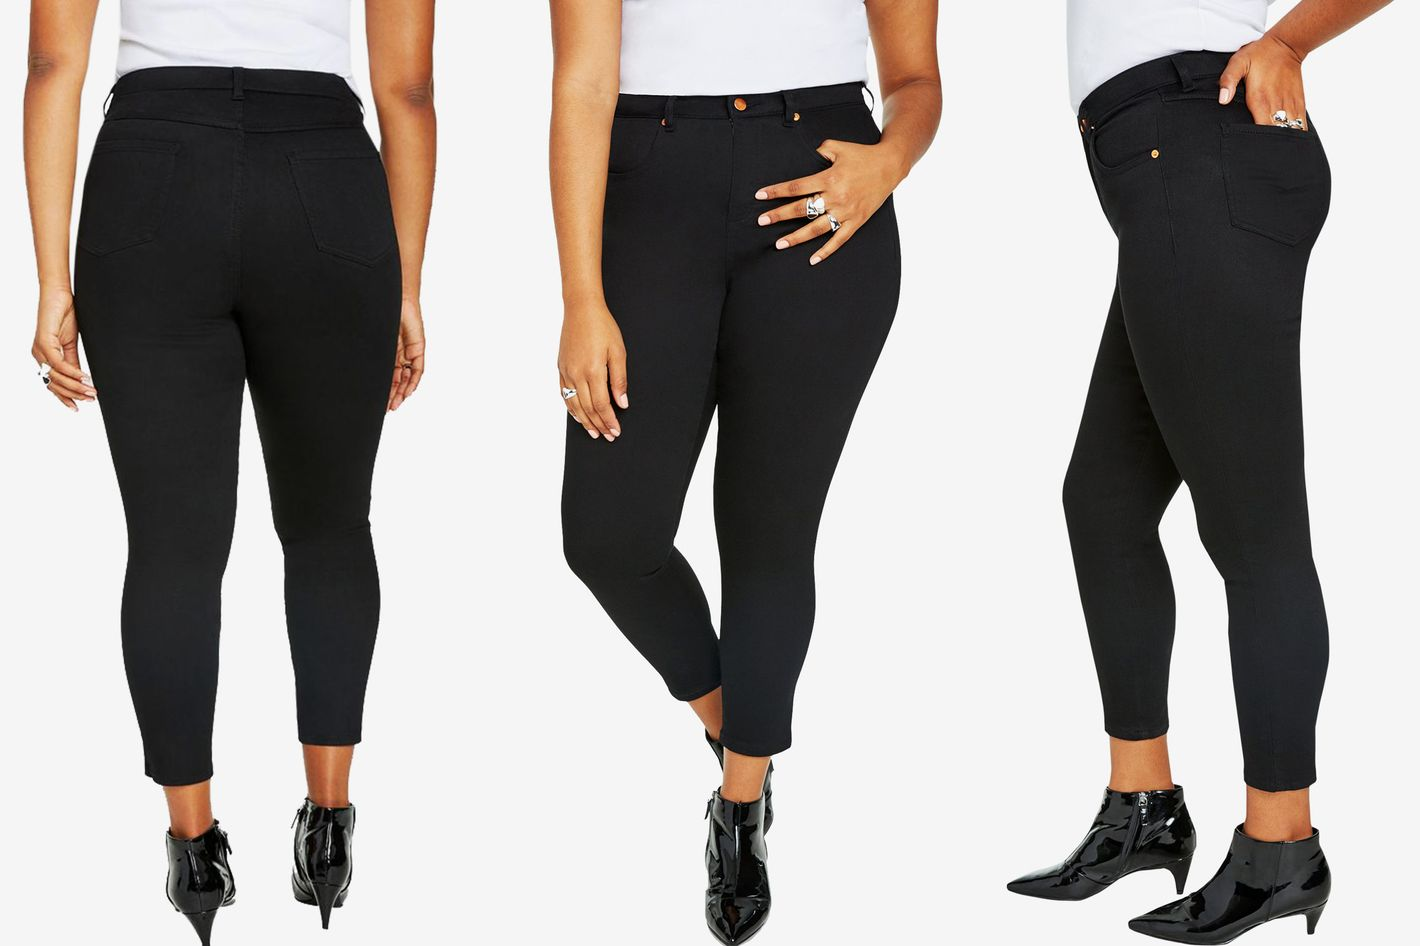 5f972f51eca These Plus-Size Skinny Jeans Keep Me Contained Without Choking My Guts